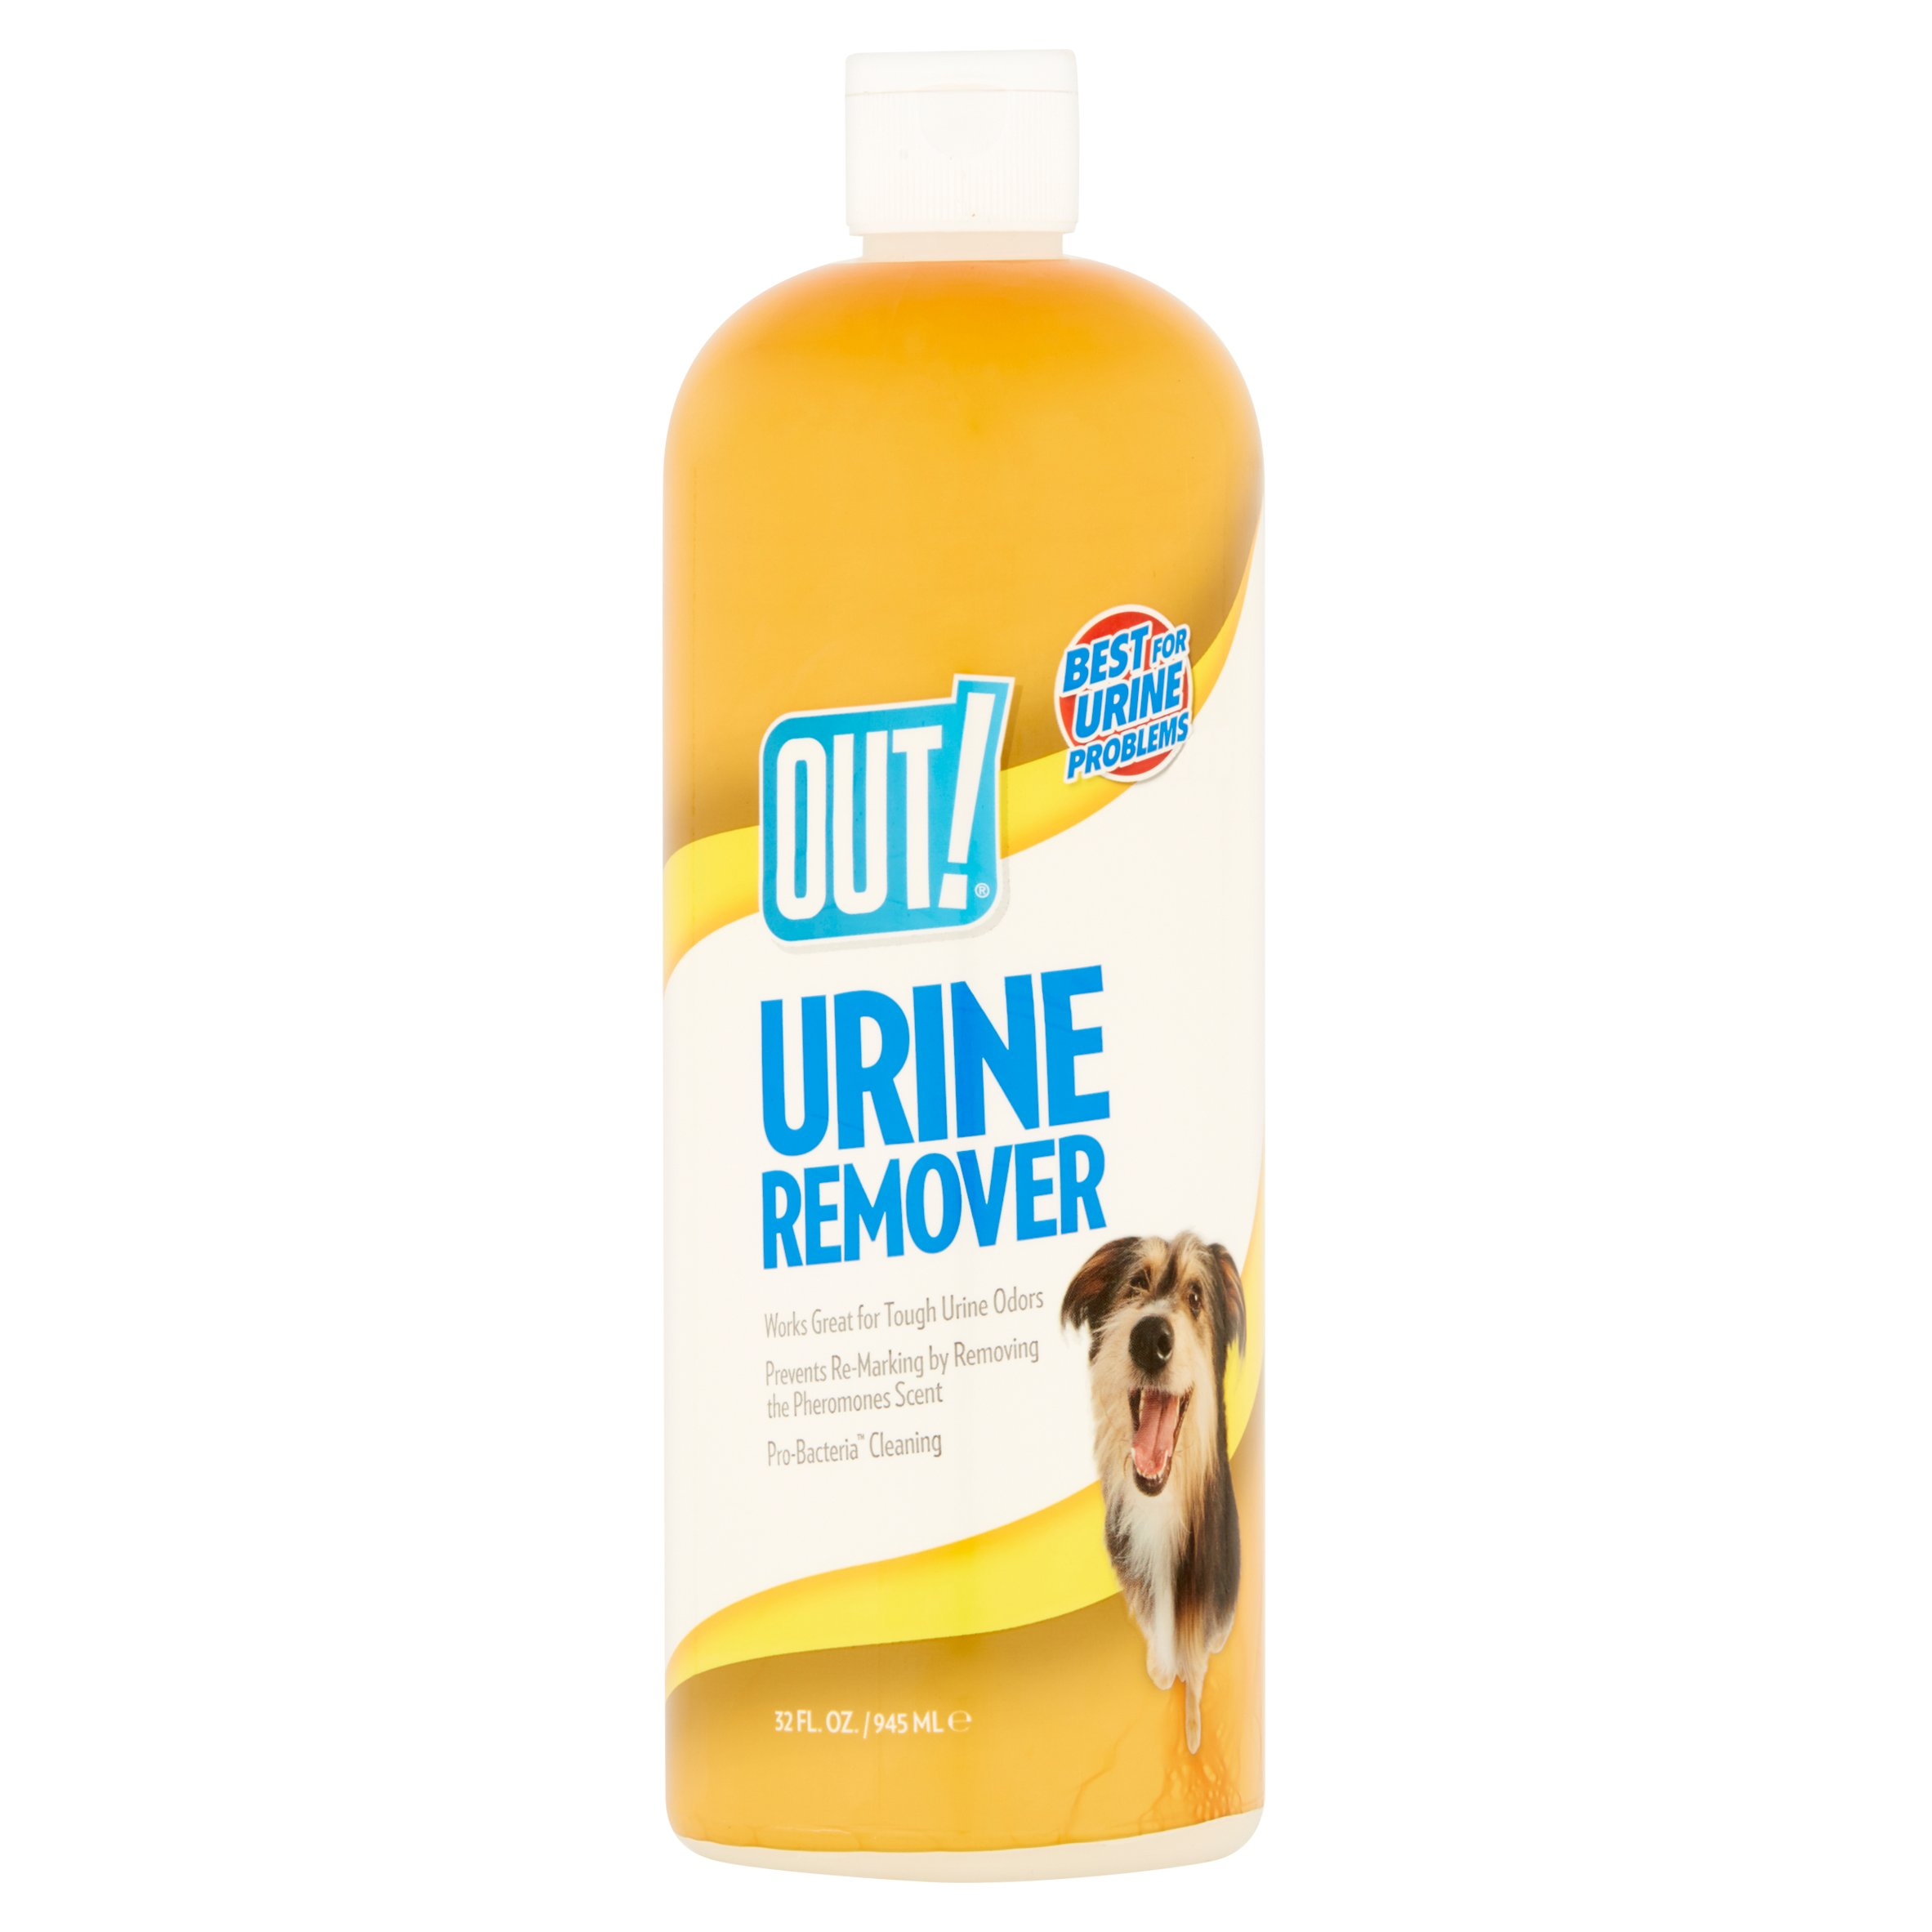 Out! Urine Remover, 32 fl oz